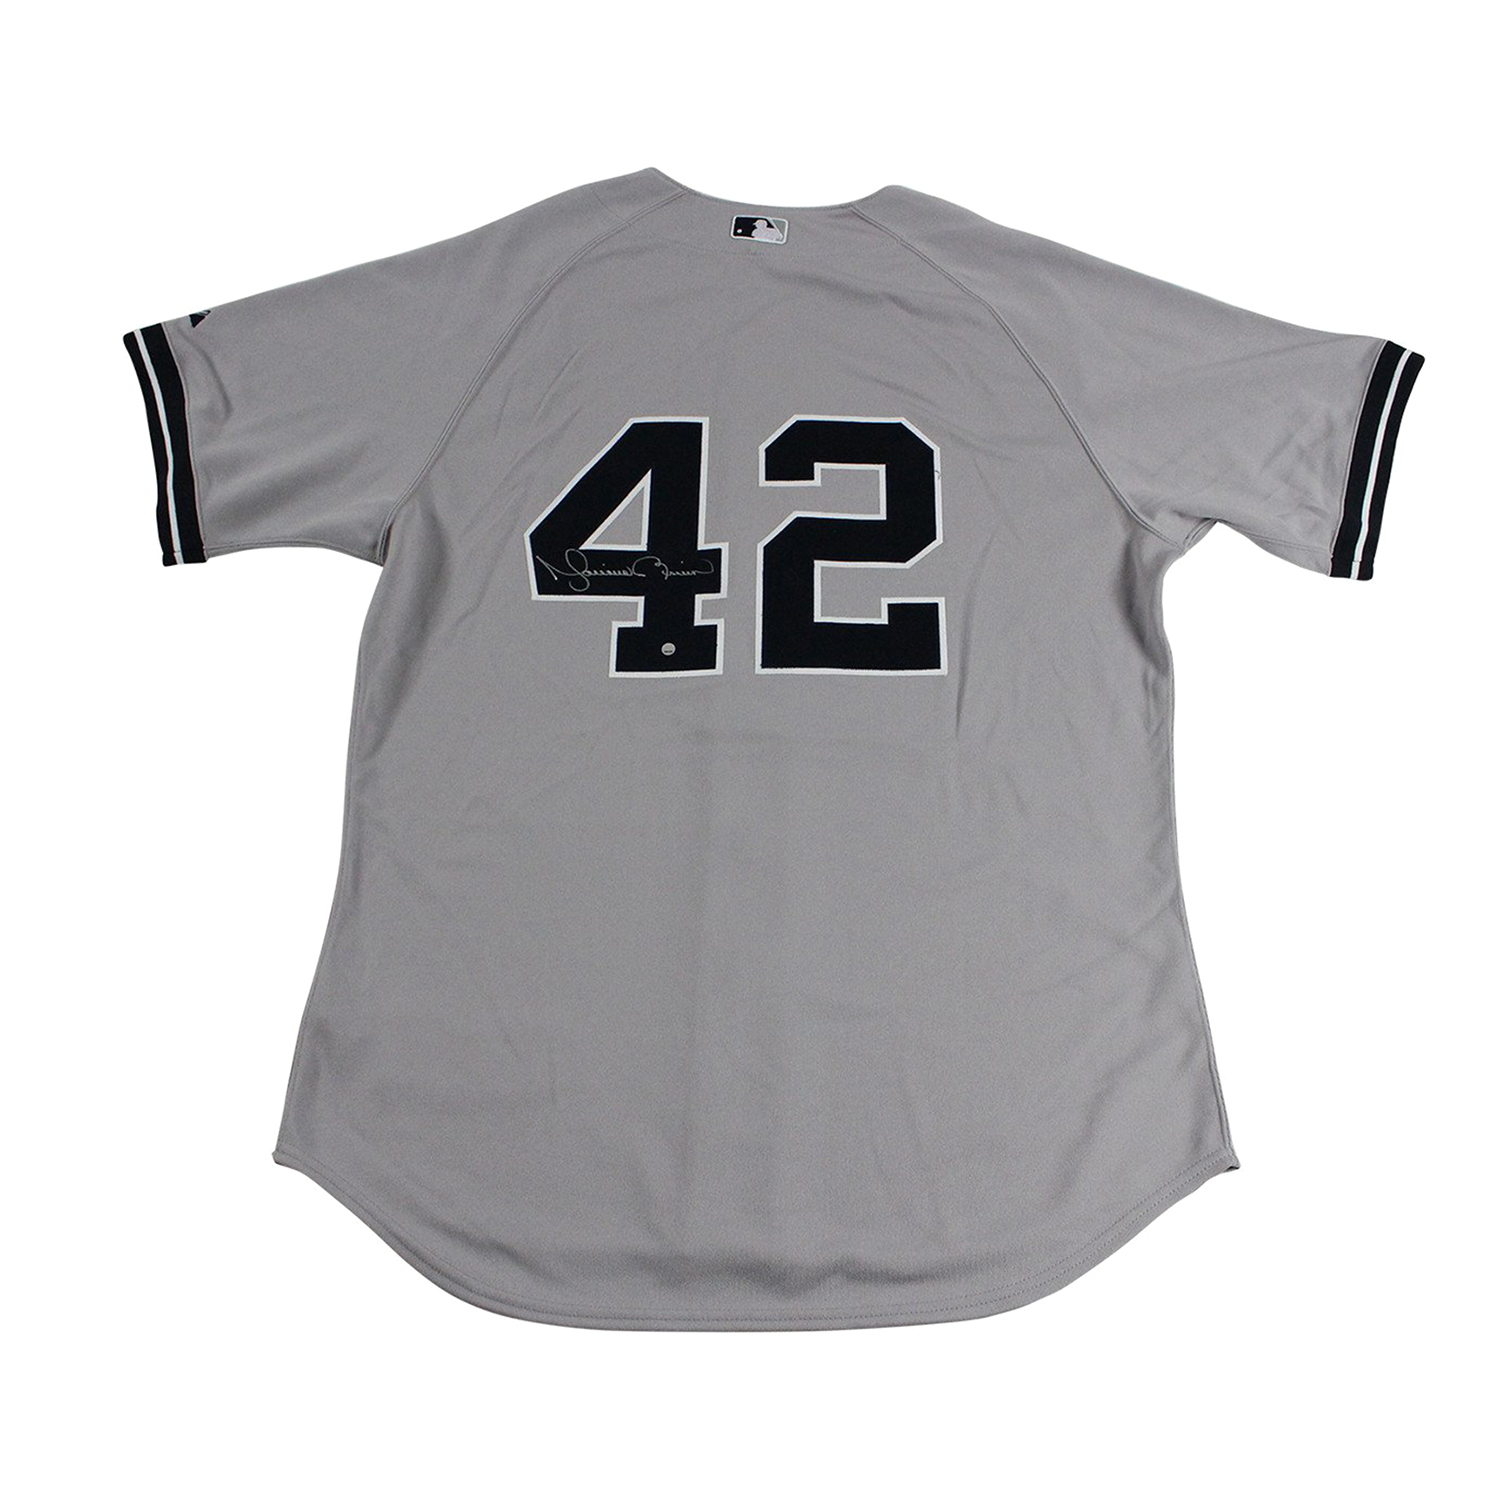 competitive price 7ba9e 2ccf0 Signed Authentic Yankees Away Jersey // Mariano Rivera ...